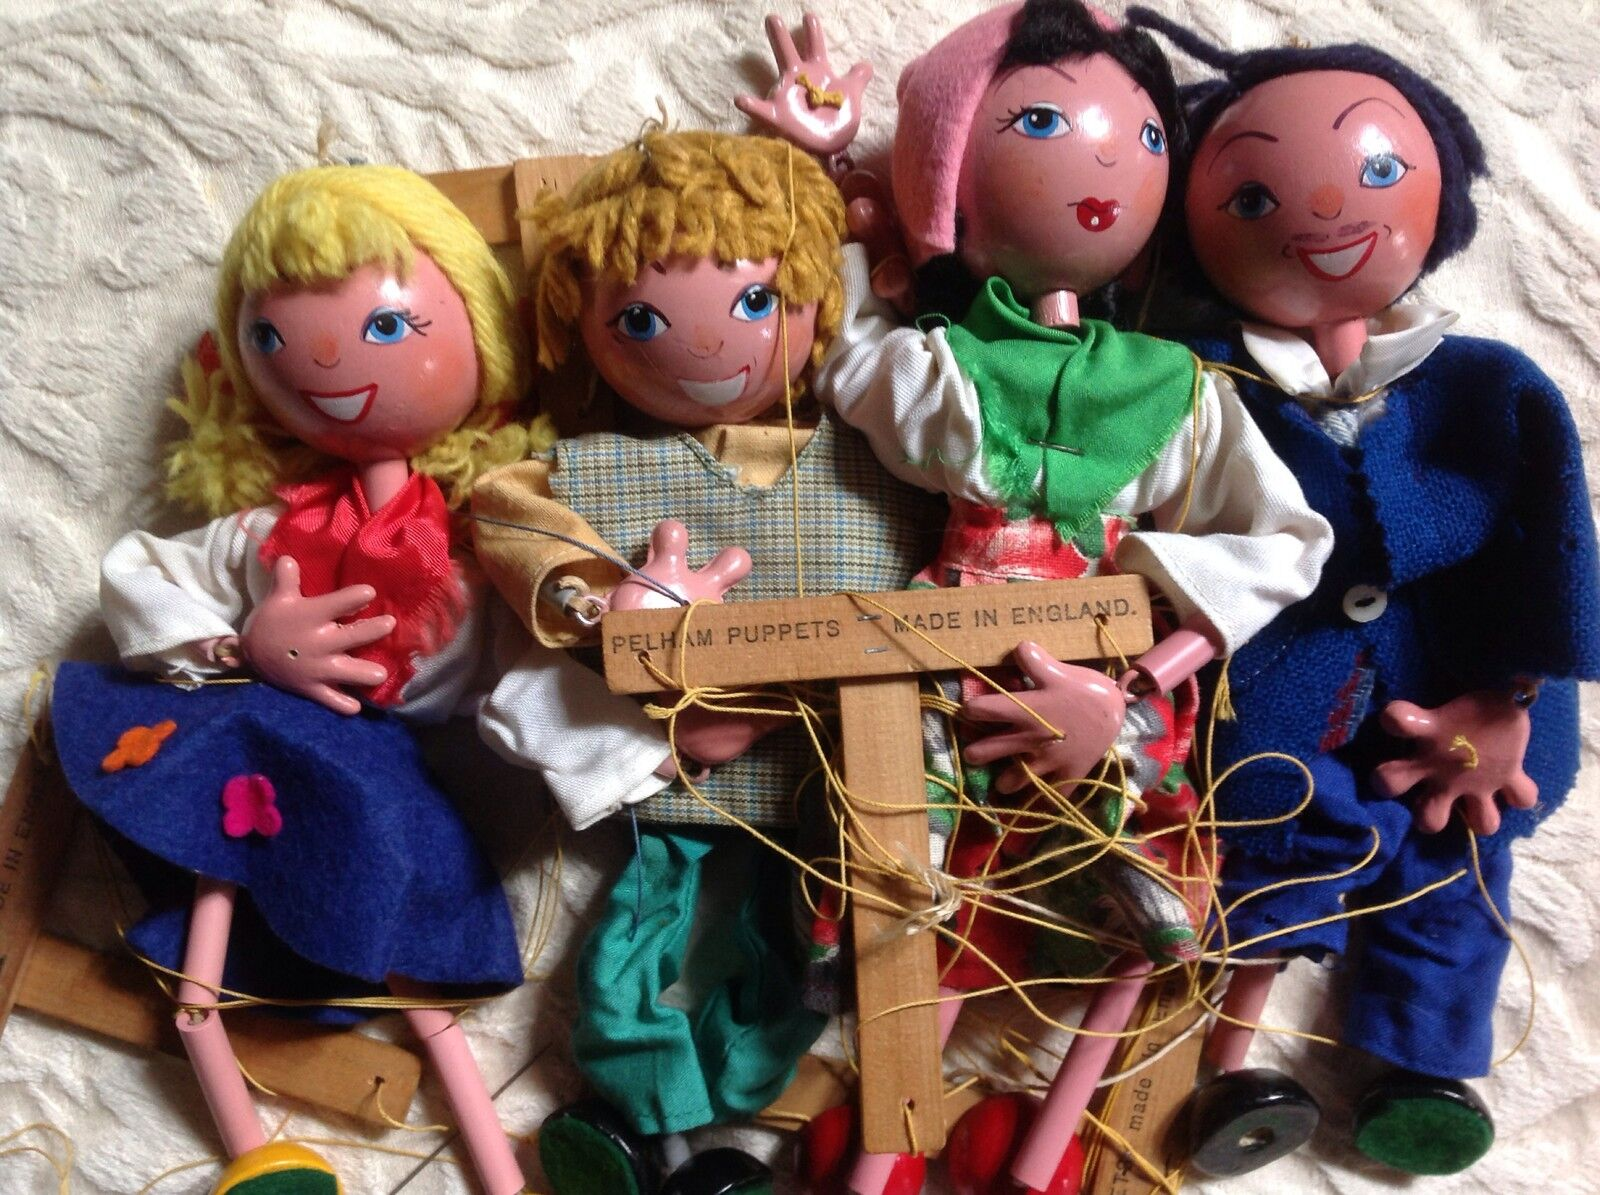 Vintage Pelham Puppets Marionette Mixed Lot Of In 4 1950's Made In Of England 9/10